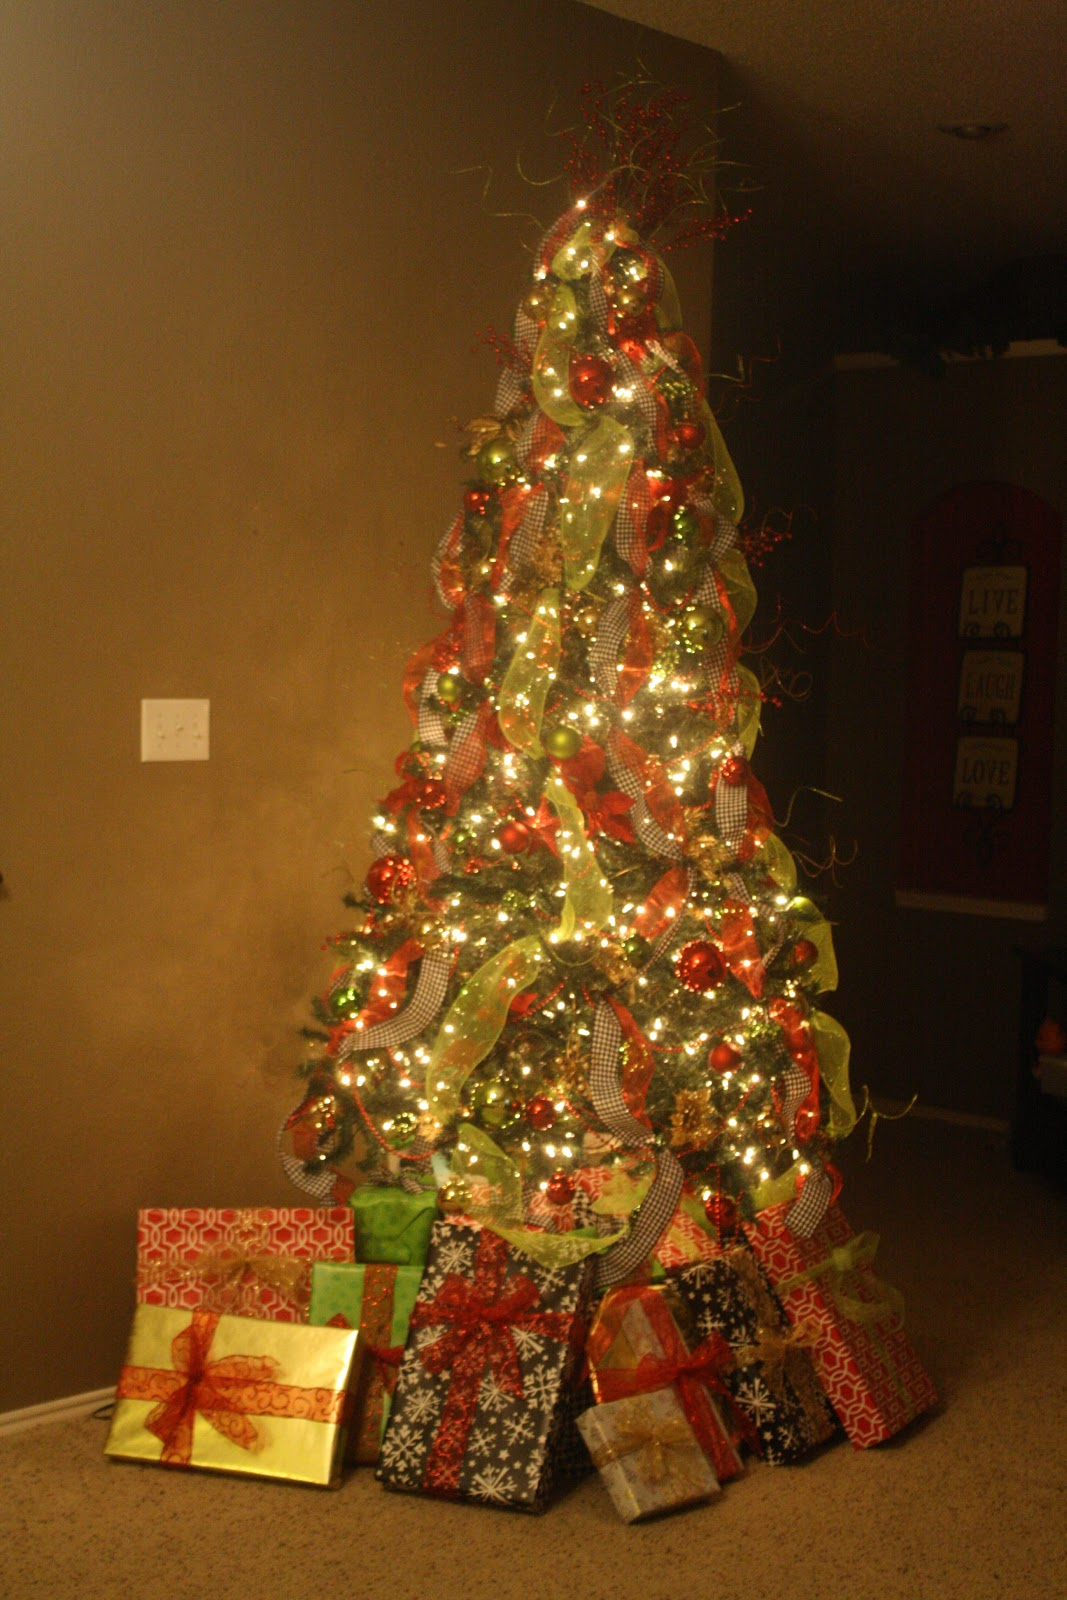 Hobby lobby glass ornaments - I Went With A Houndstooth Ribbon And Green Mesh Ribbon That I Got At Hobby Lobby For 50 Off I Also Added Lots Green Glass Ball Ornaments That I Got At